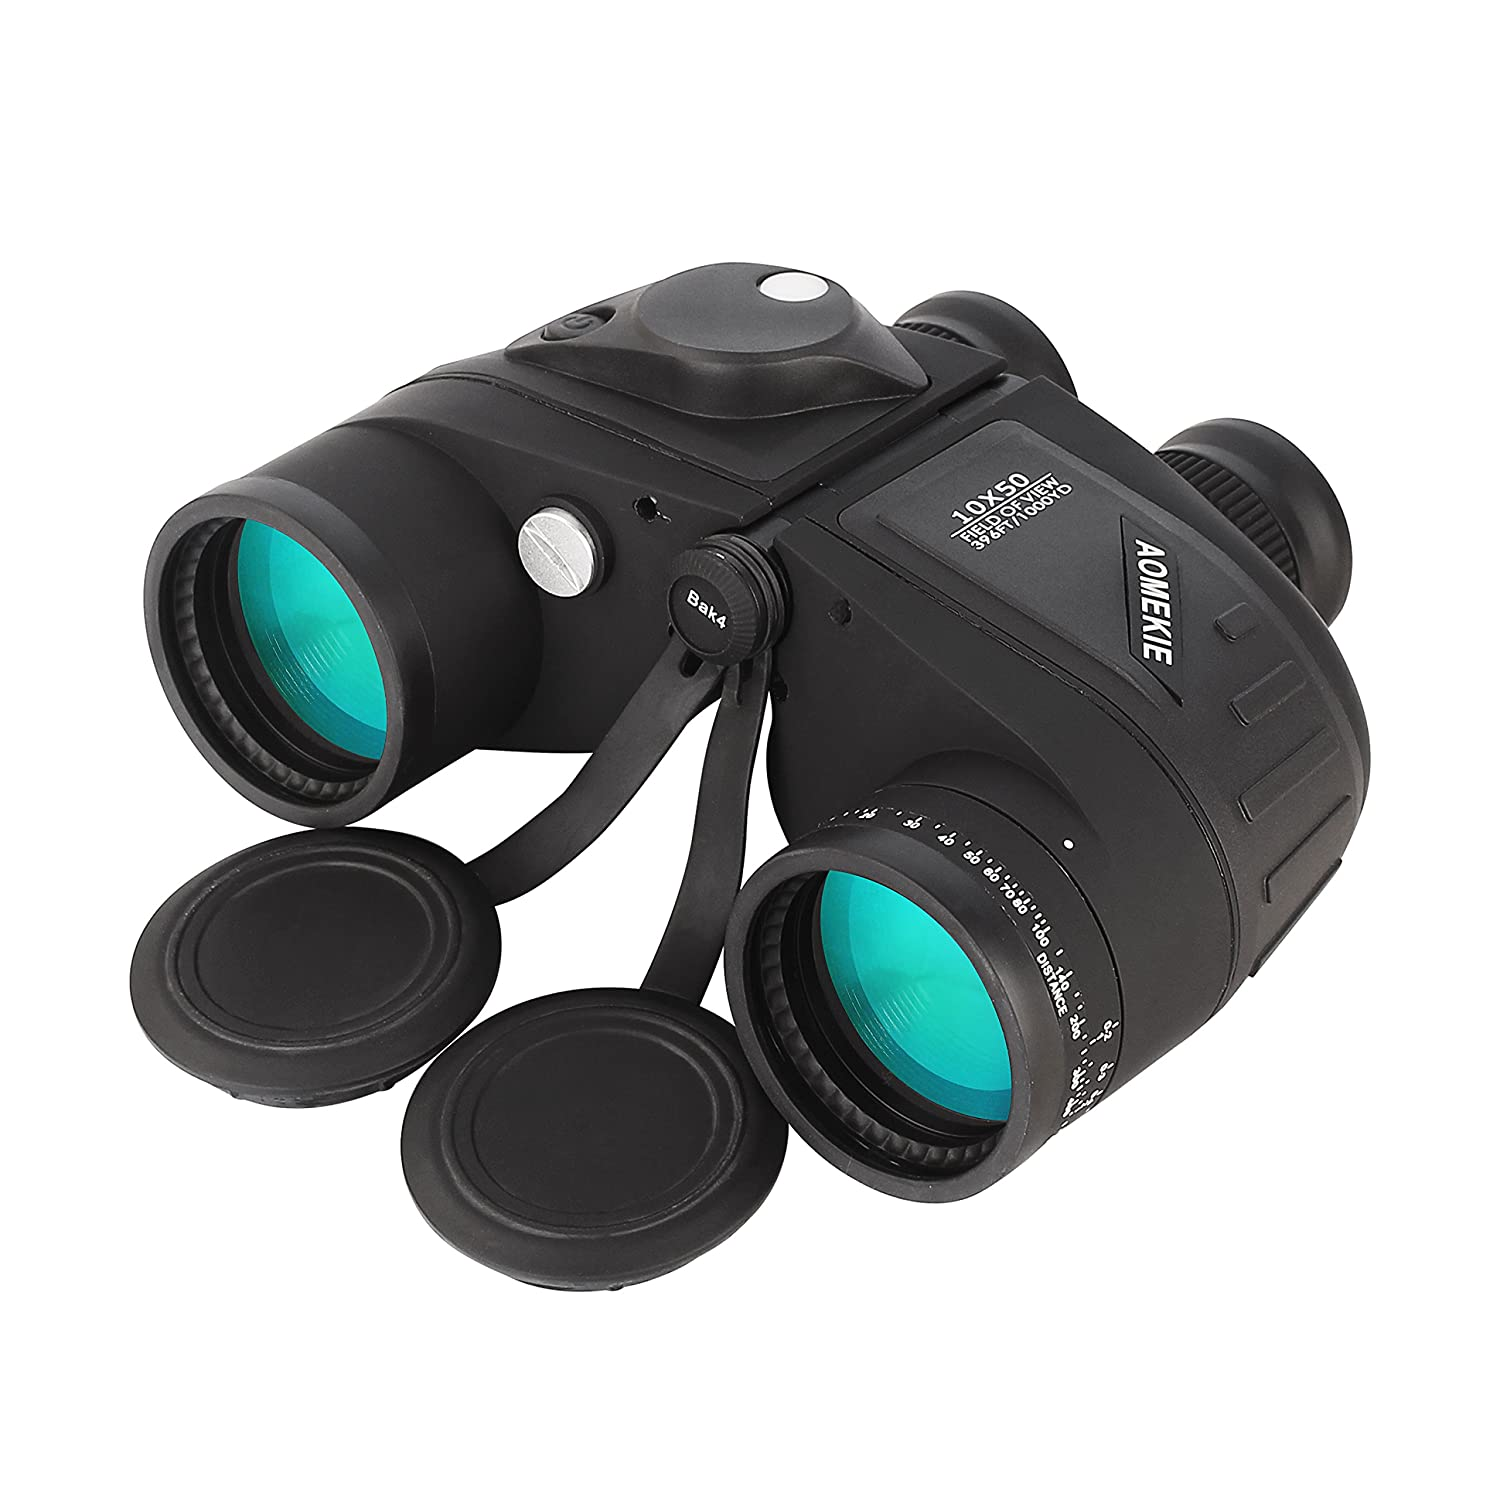 Aomekie 10X50mm Top Grade Floating Marine Military Binoculars with Rangefinder Scale and Illuminated Compass Waterproof/ Fogproof For Navigation, Boating, Fishing, Water Sports, Hunting